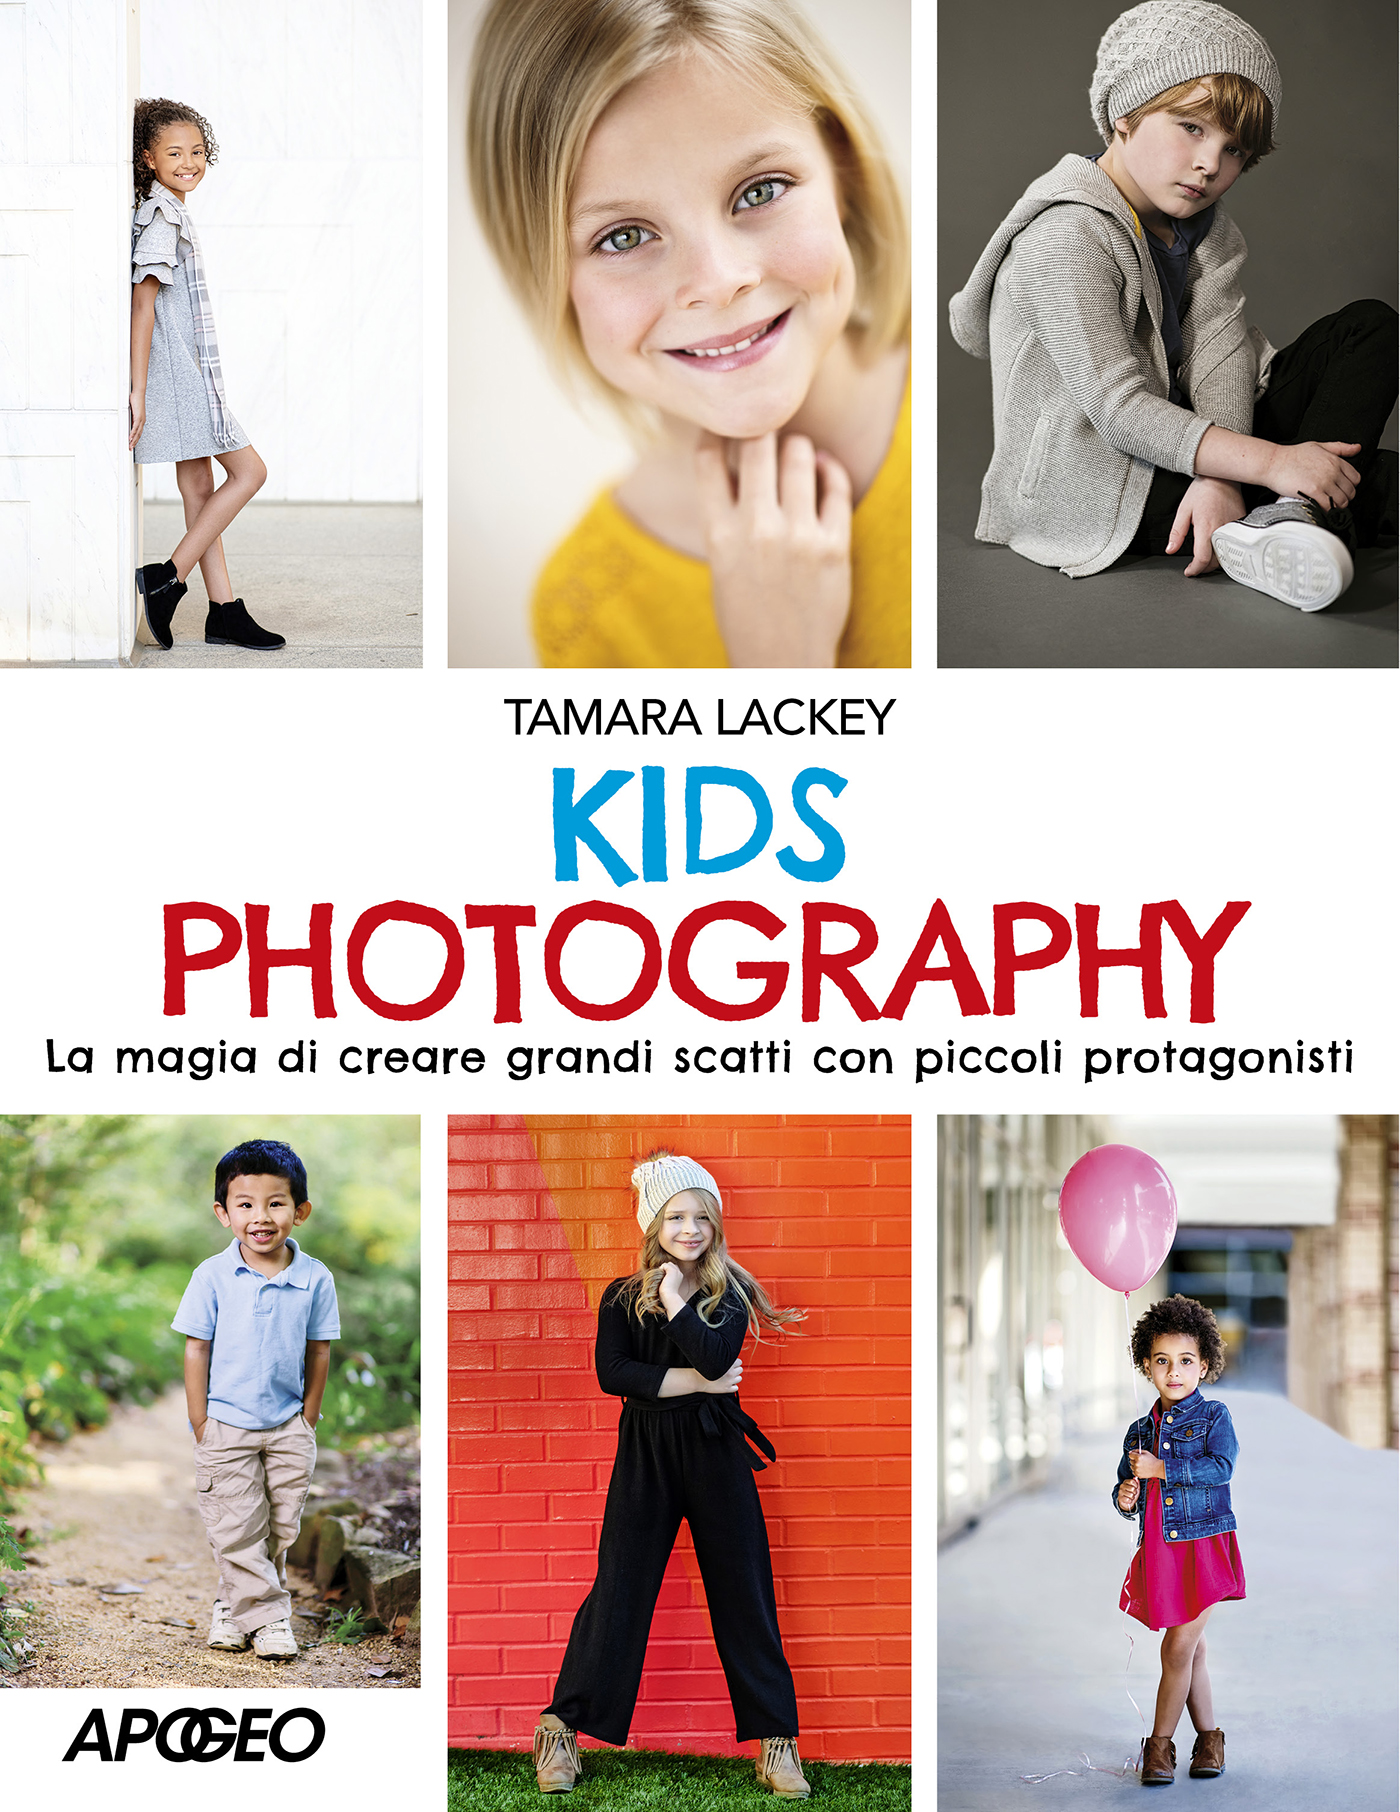 Kids Photography copertina